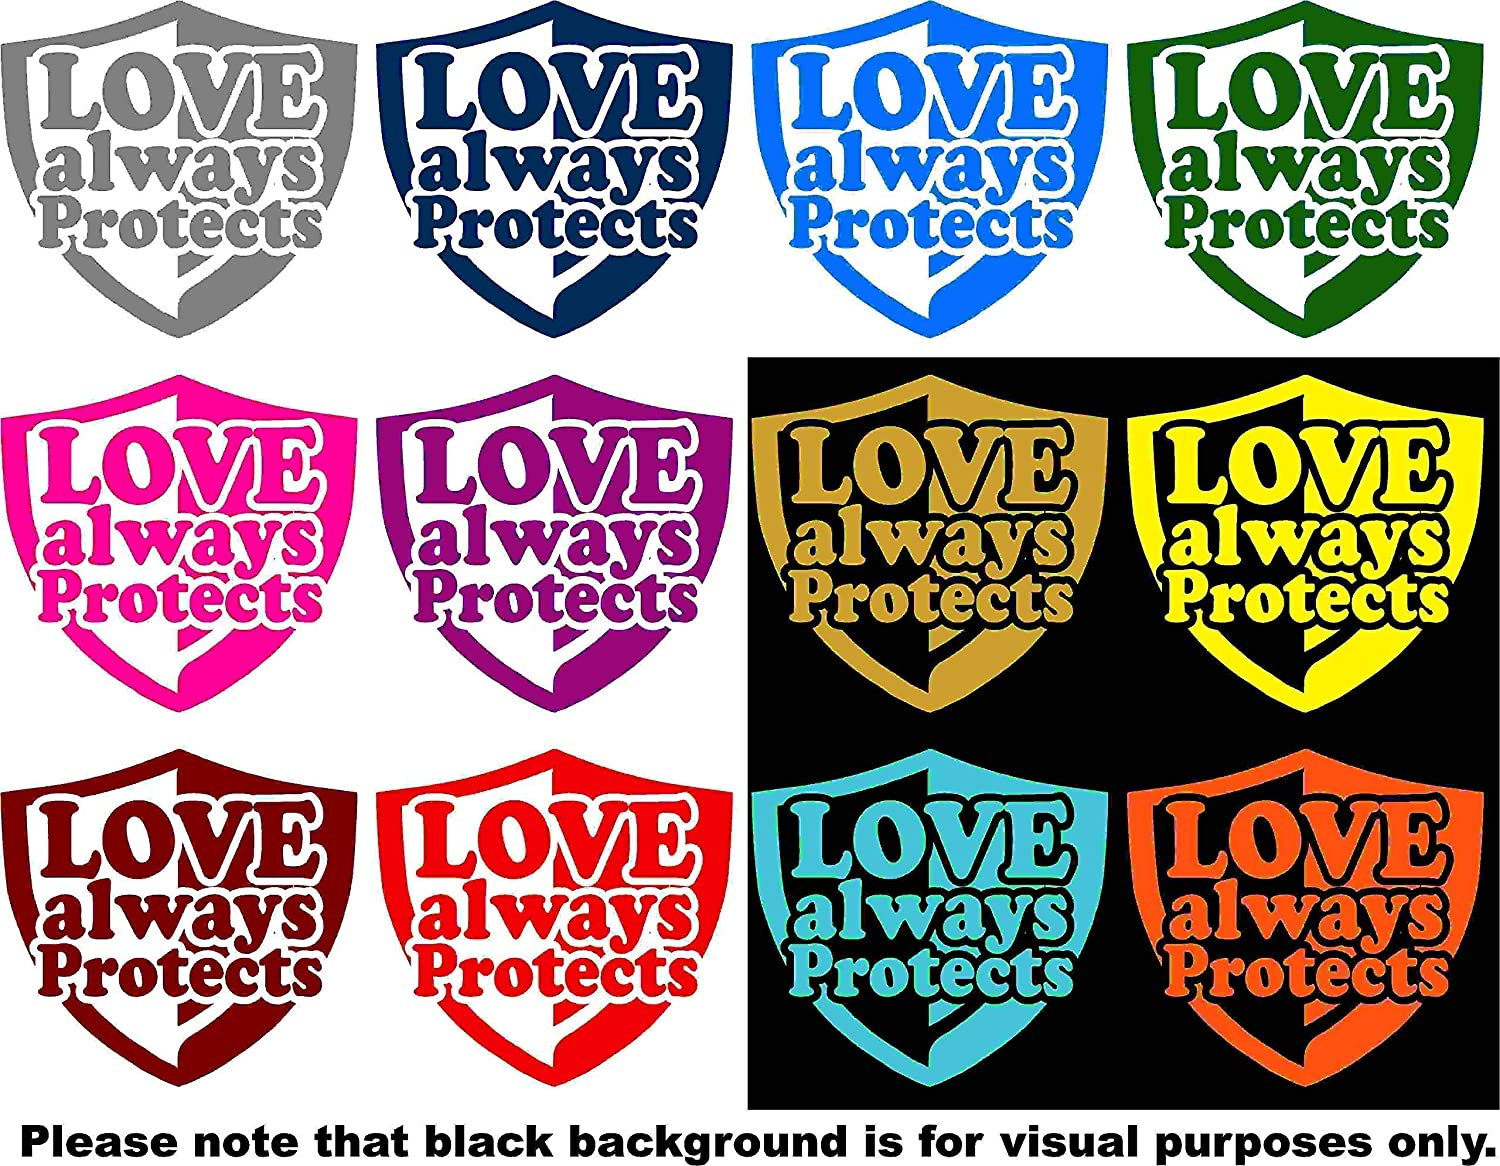 Love Always Protects Quote Bible Verse Car Window Tumblers Wall Decal Sticker Vinyl Laptops Cellphones Phones Tablets Ipads Helmets Motorcycles Computer Towers V and T Gifts